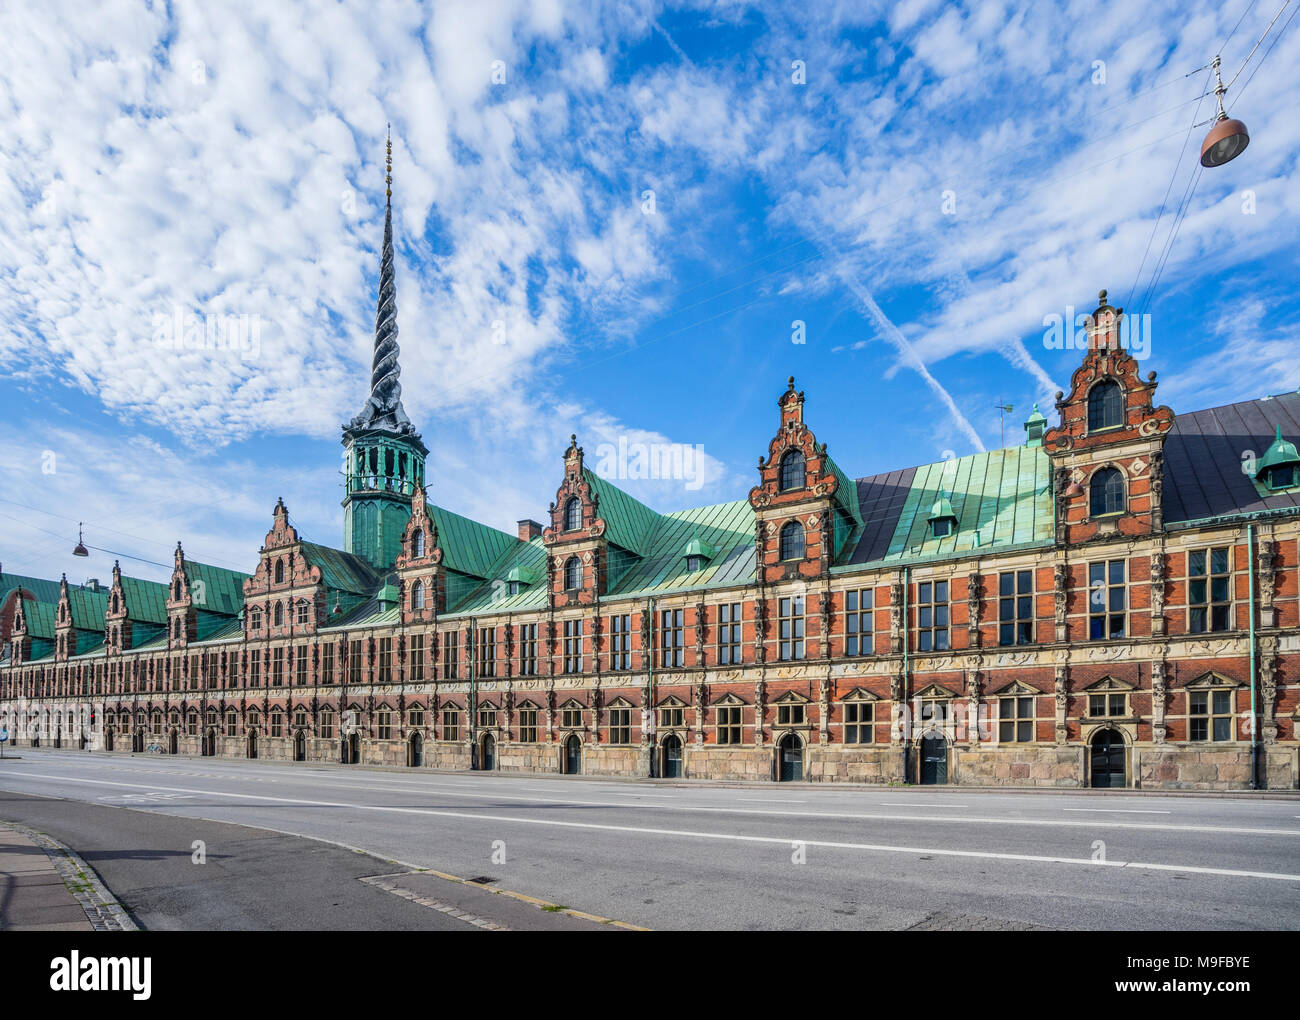 Denmark, Zealand, Copenhagen, view of the Børsen, Royal exchange, the former stock exchange with its distinctive spire, shaped as the tails of four dr - Stock Image